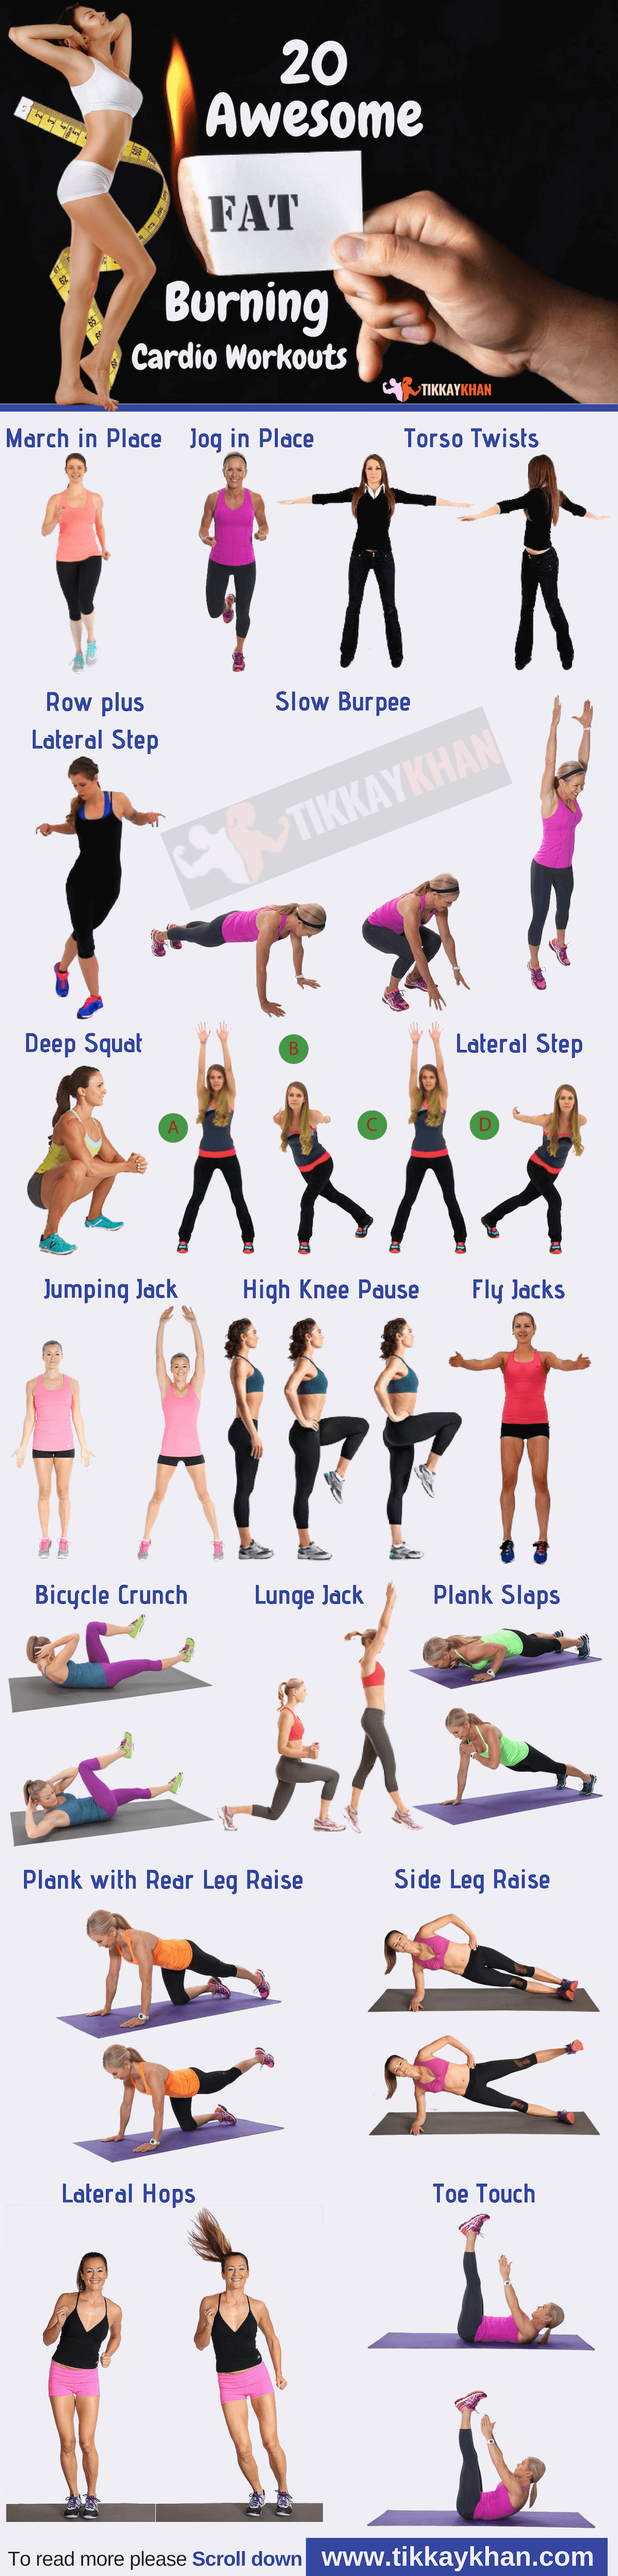 Fat Burning Cardio Workouts Infographic